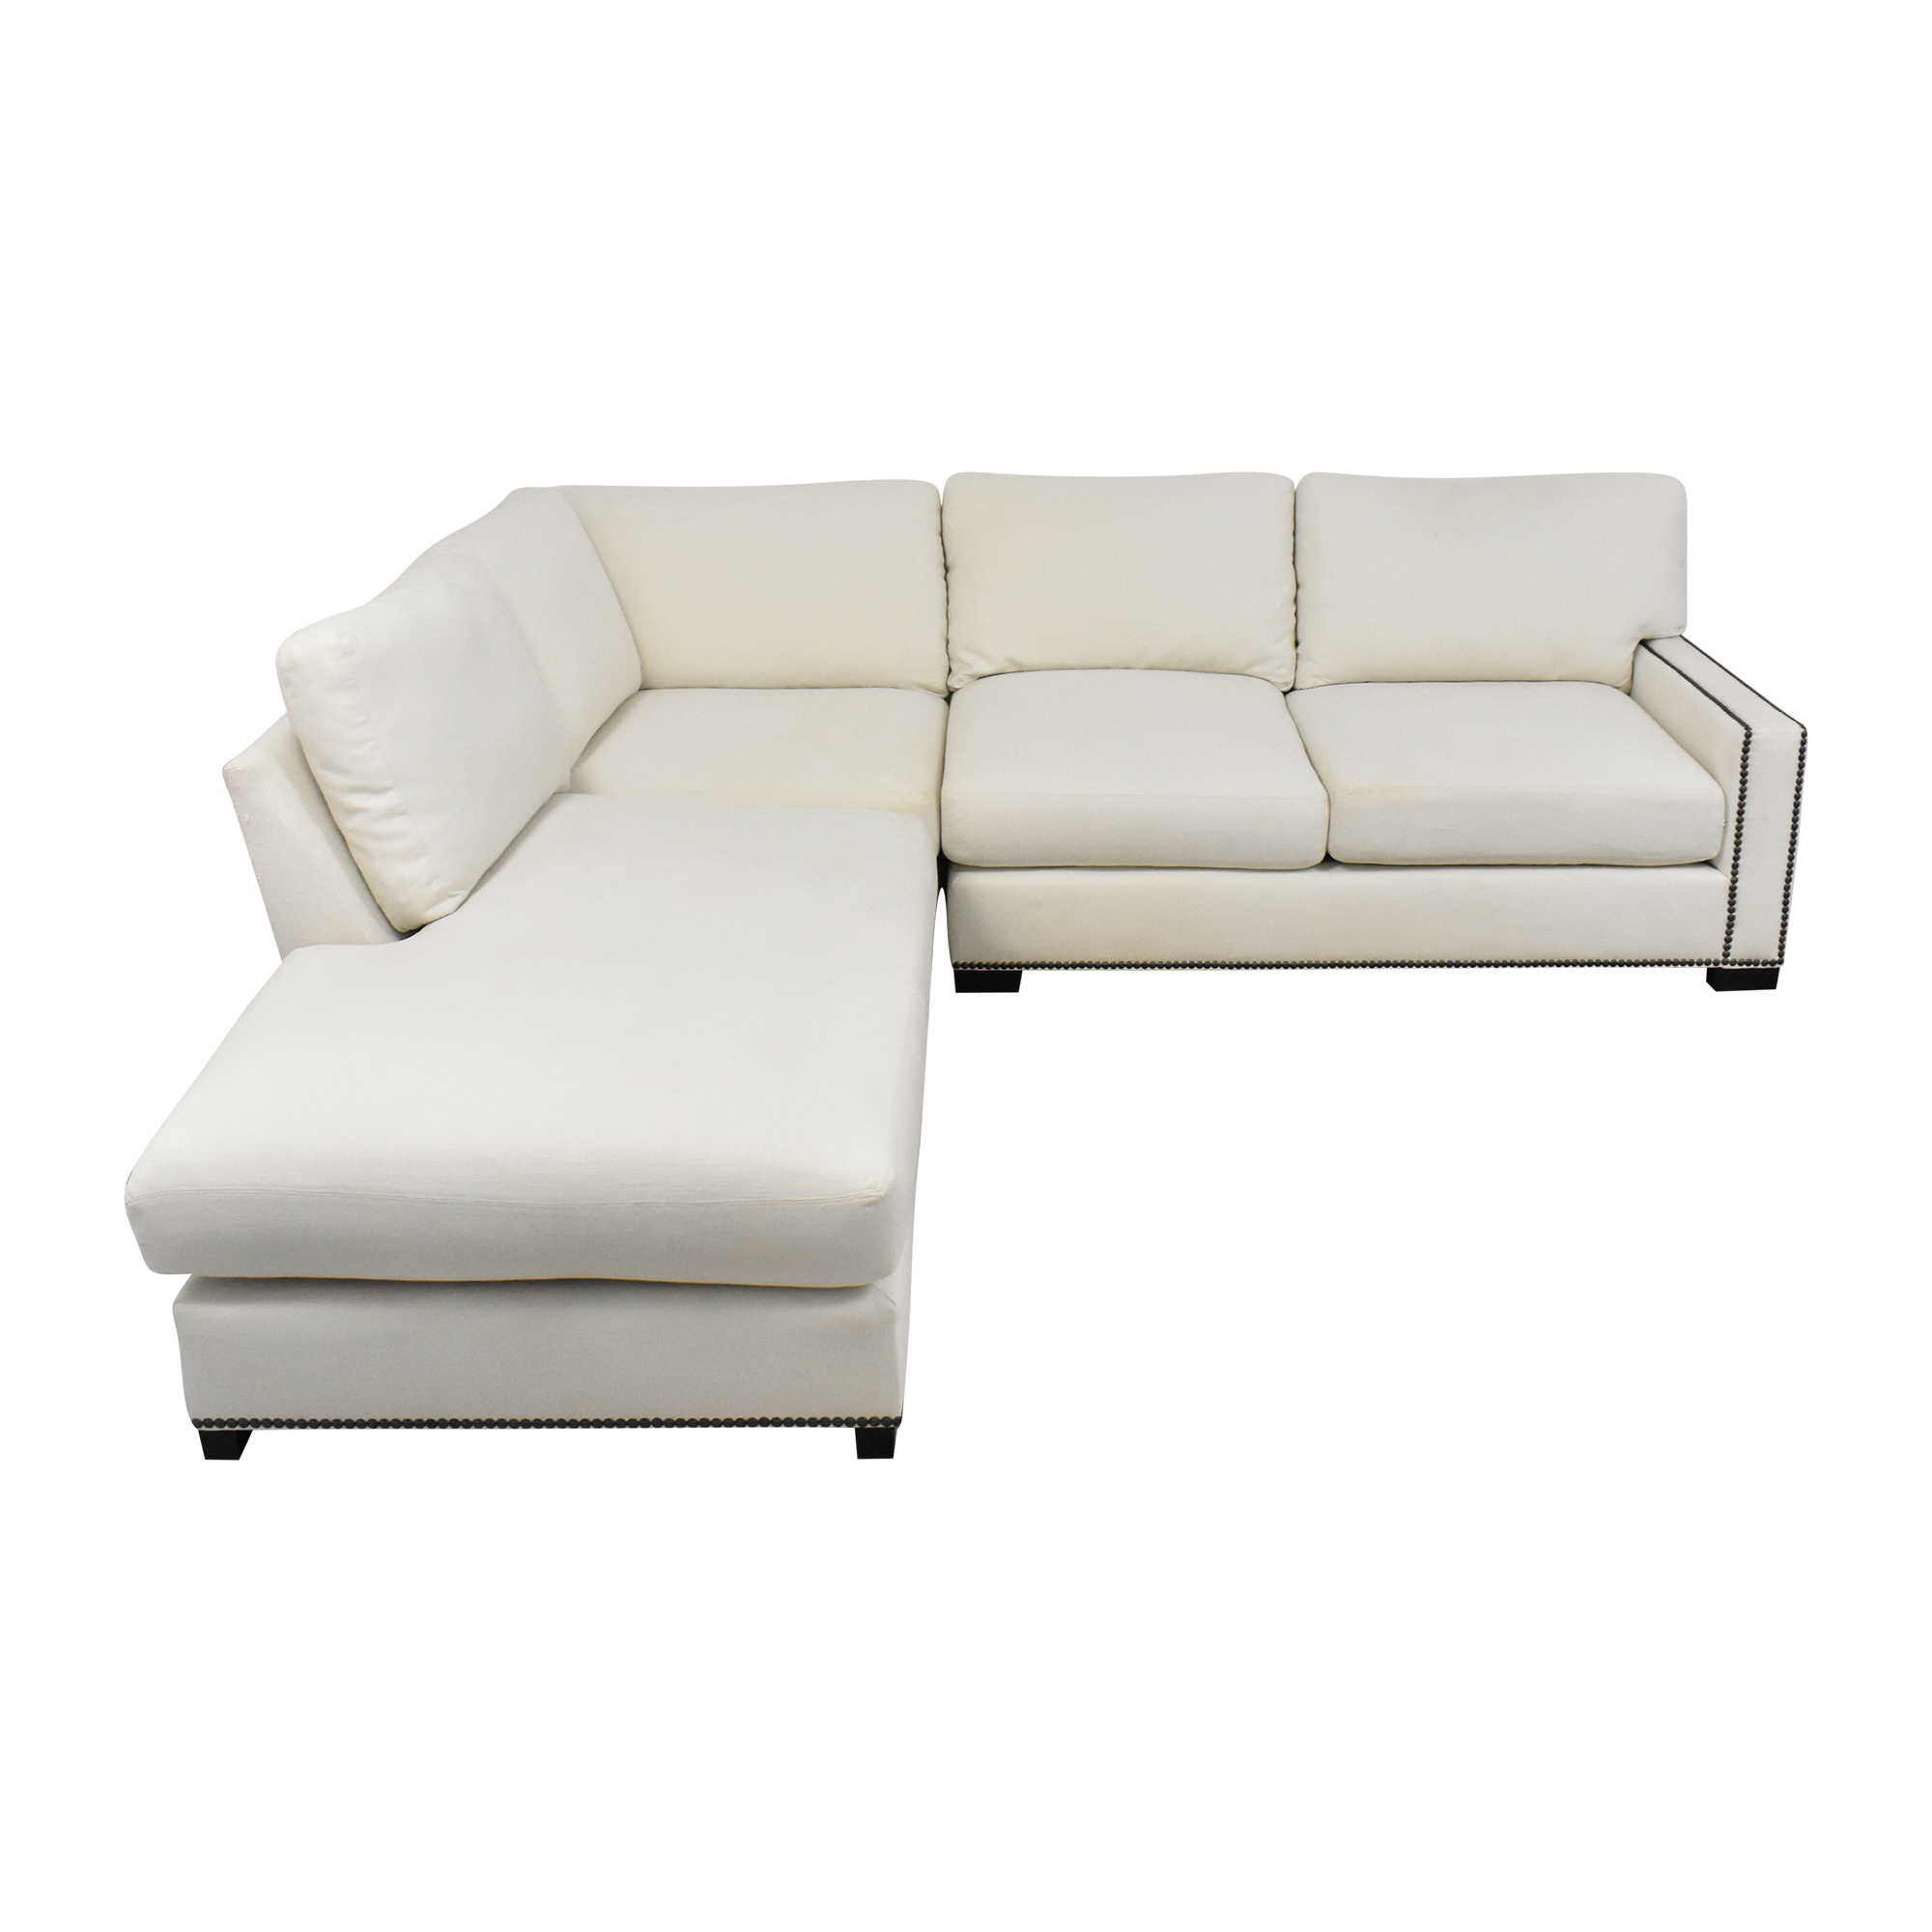 Pottery Barn Turner Nailhead Chaise Sectional Sofa / Sofas